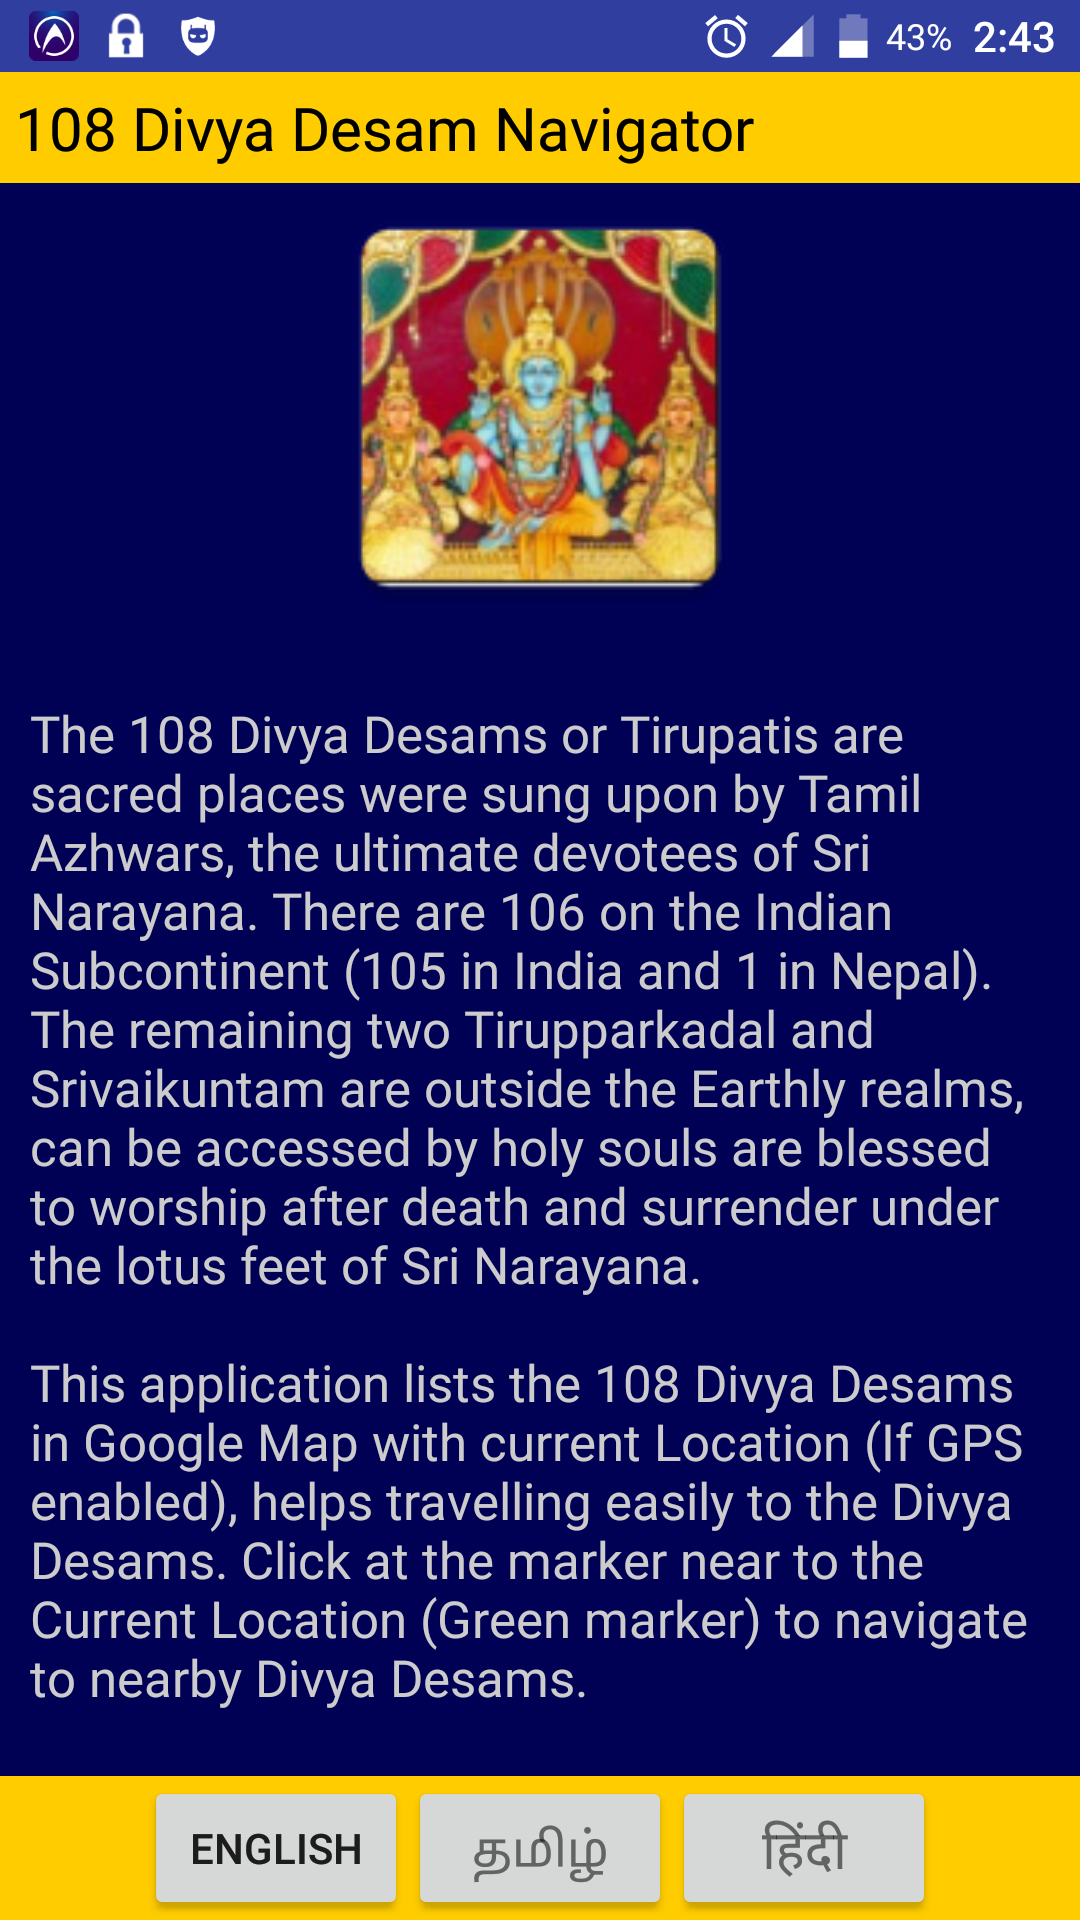 108 Divya Desam Navigator: Amazon co uk: Appstore for Android